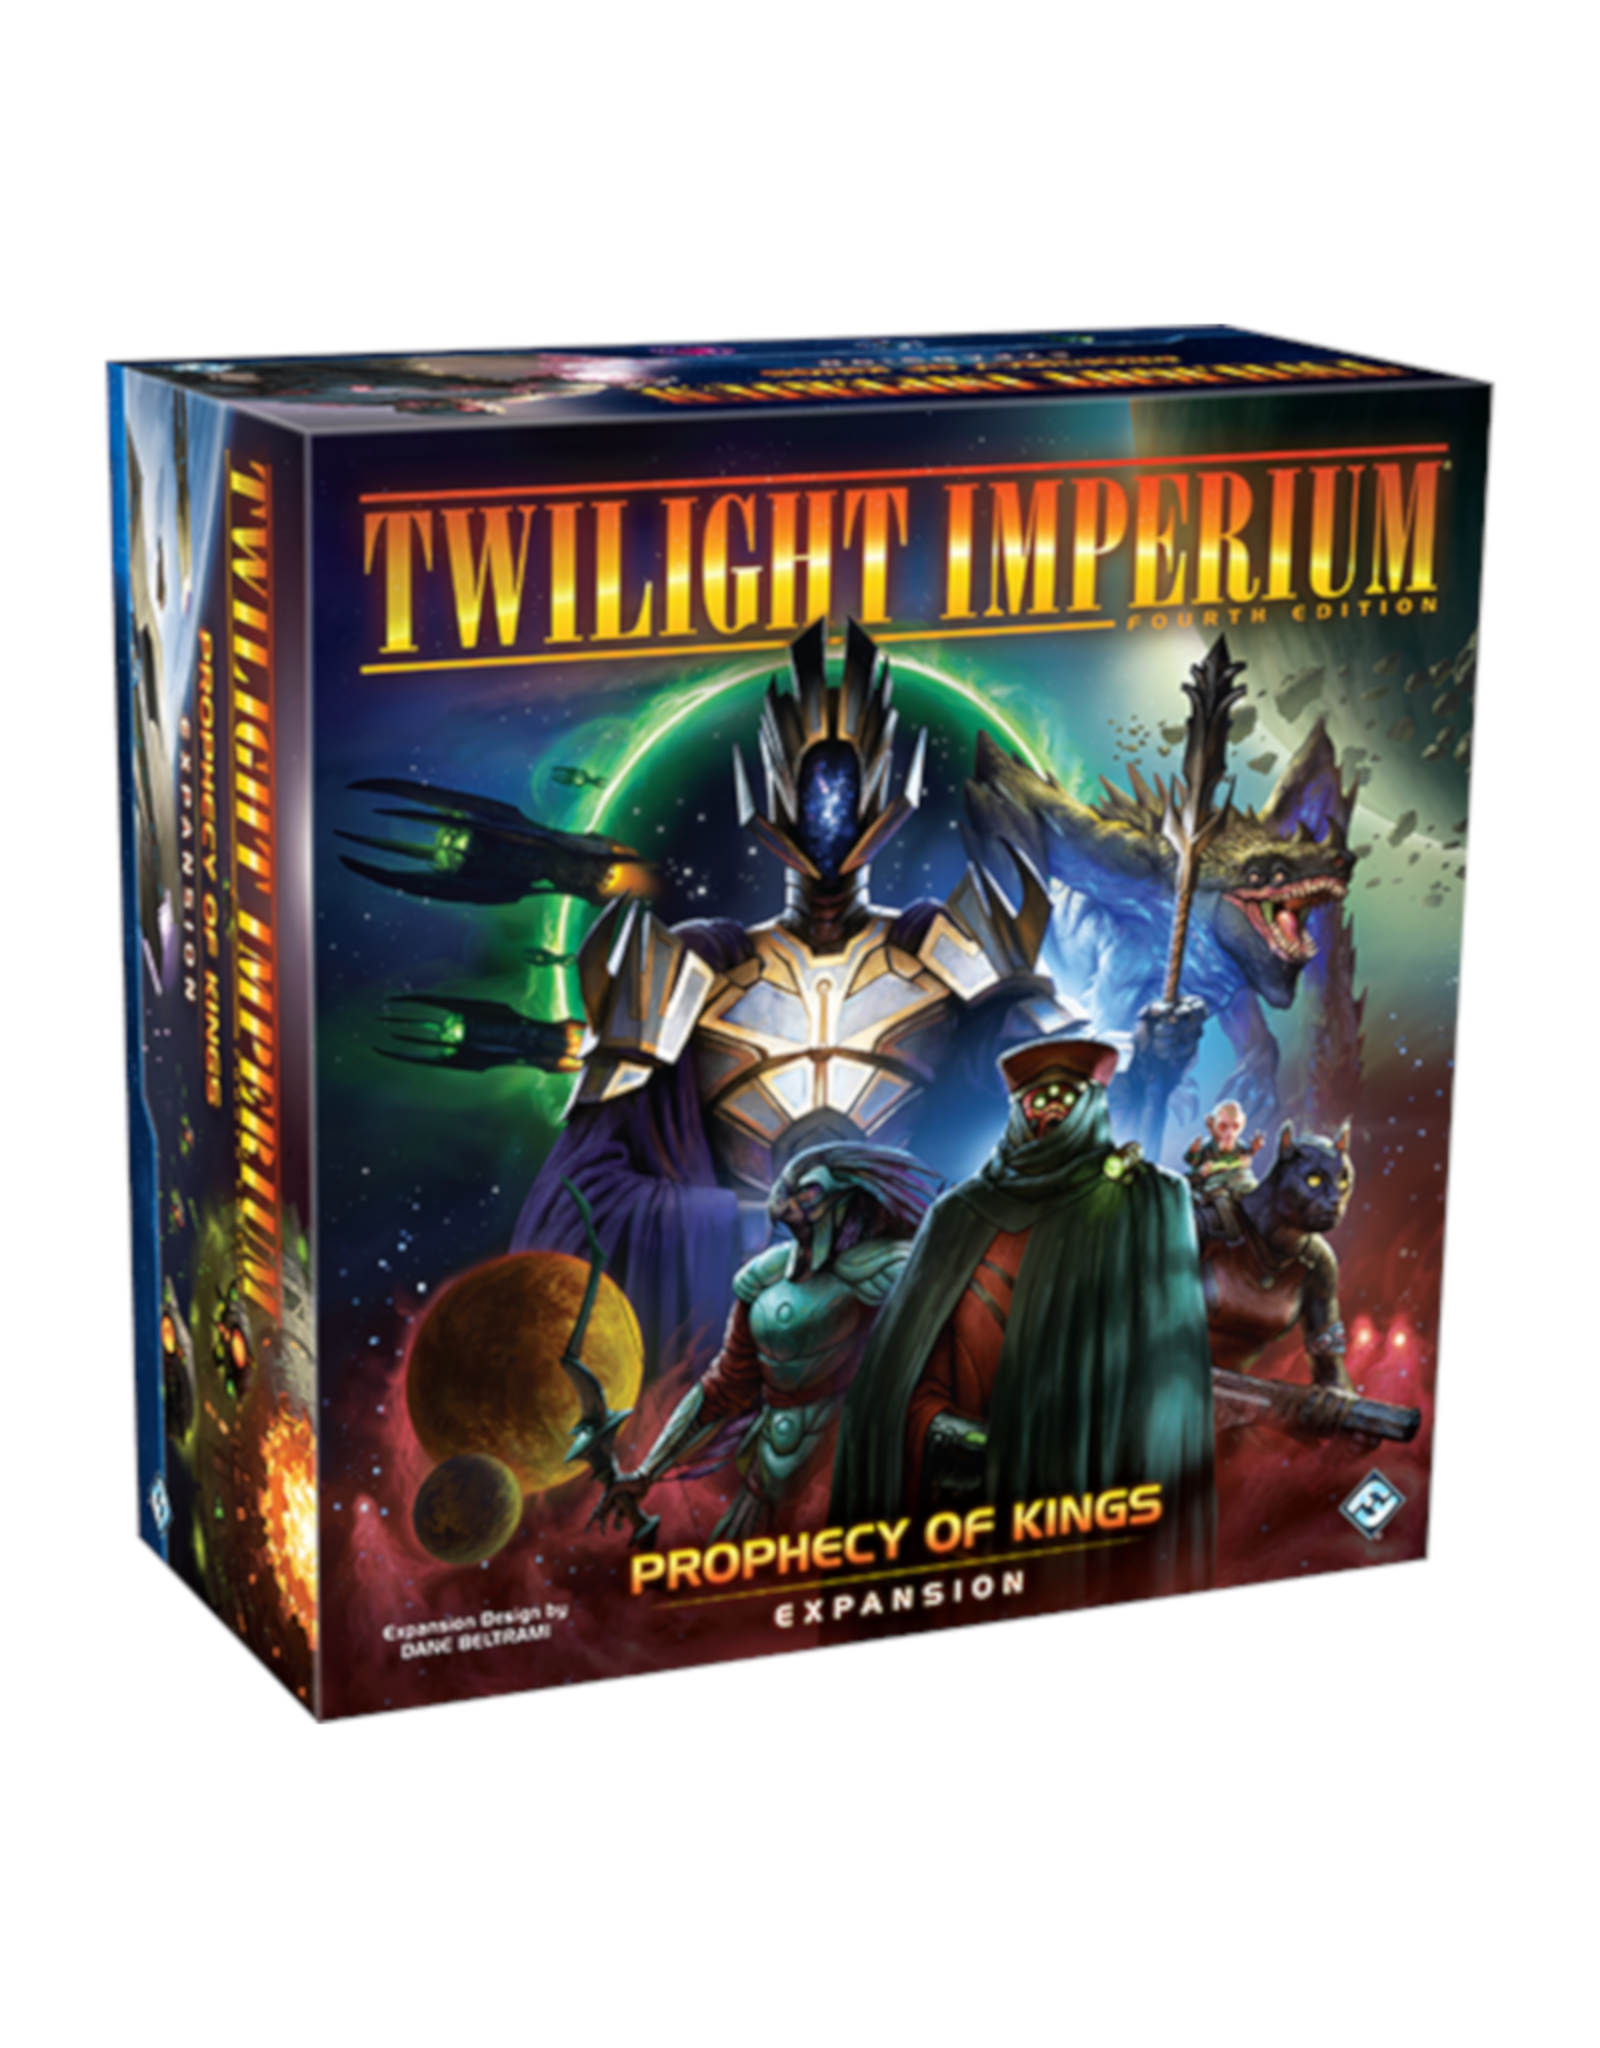 Fantasy Flight Games Twilight Imperium Prophecy of Kings Expansion (Pre-Order)